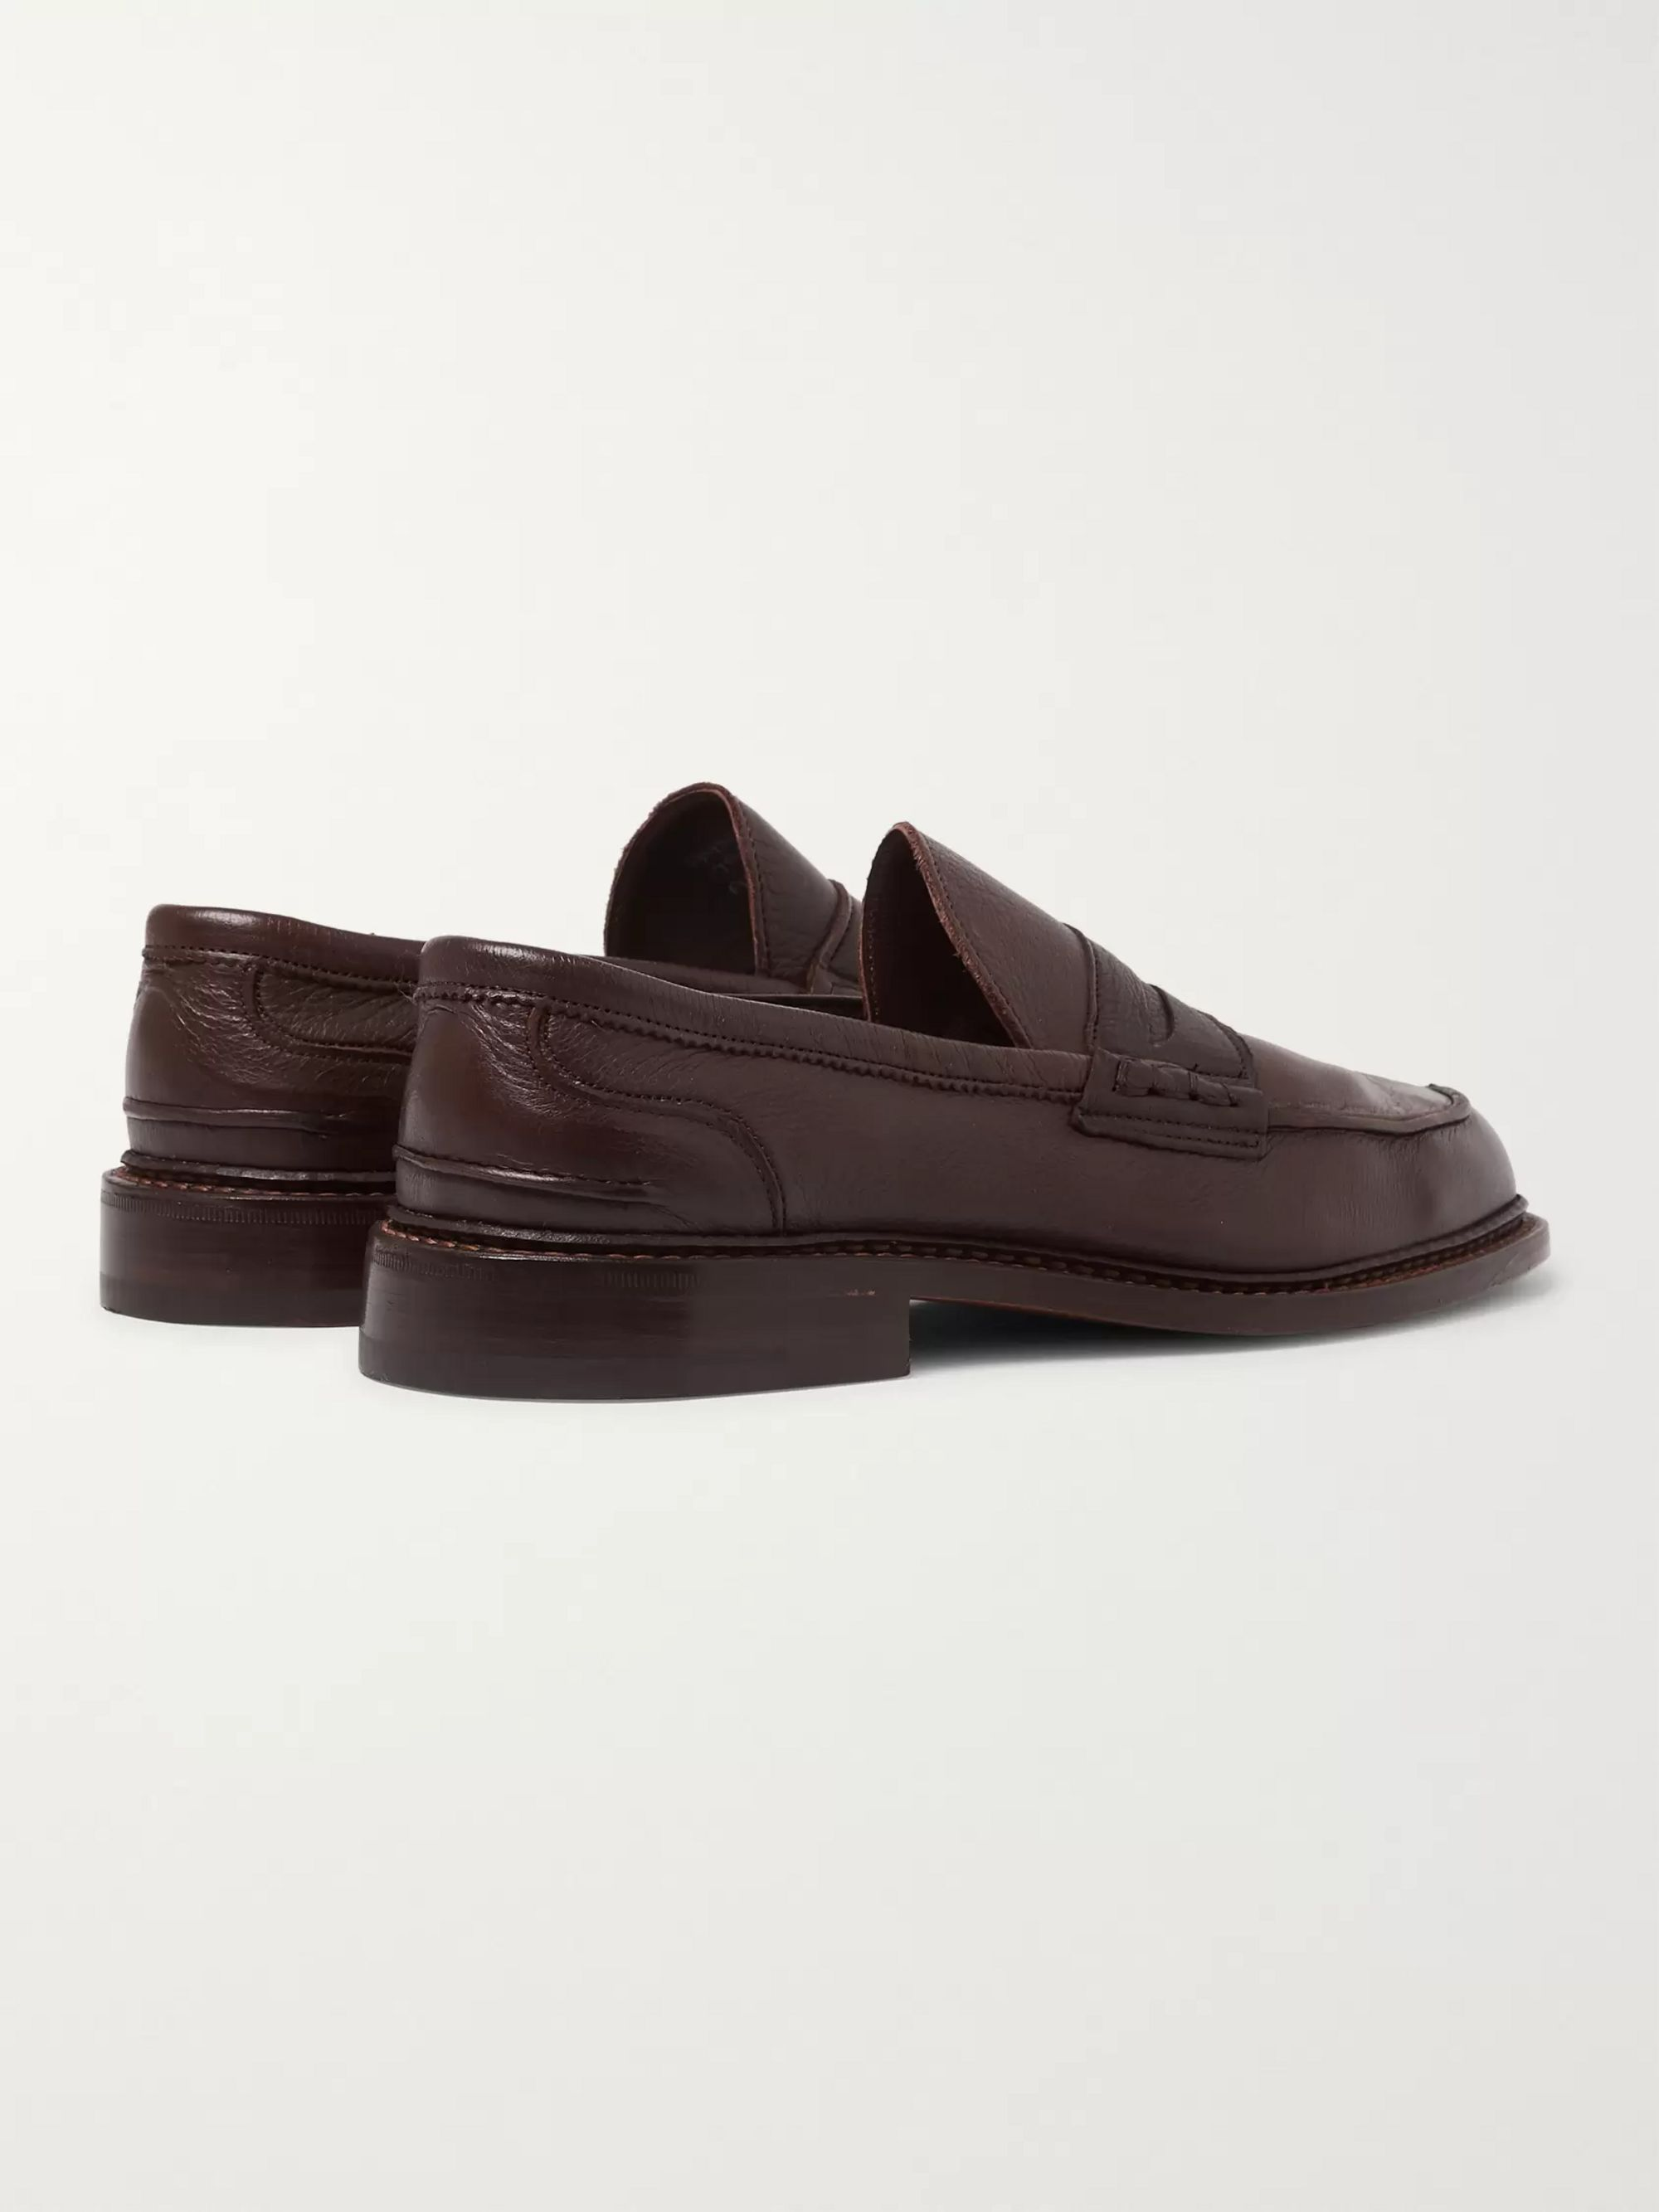 Tricker's Adam Pebble-Grain Leather Penny Loafers